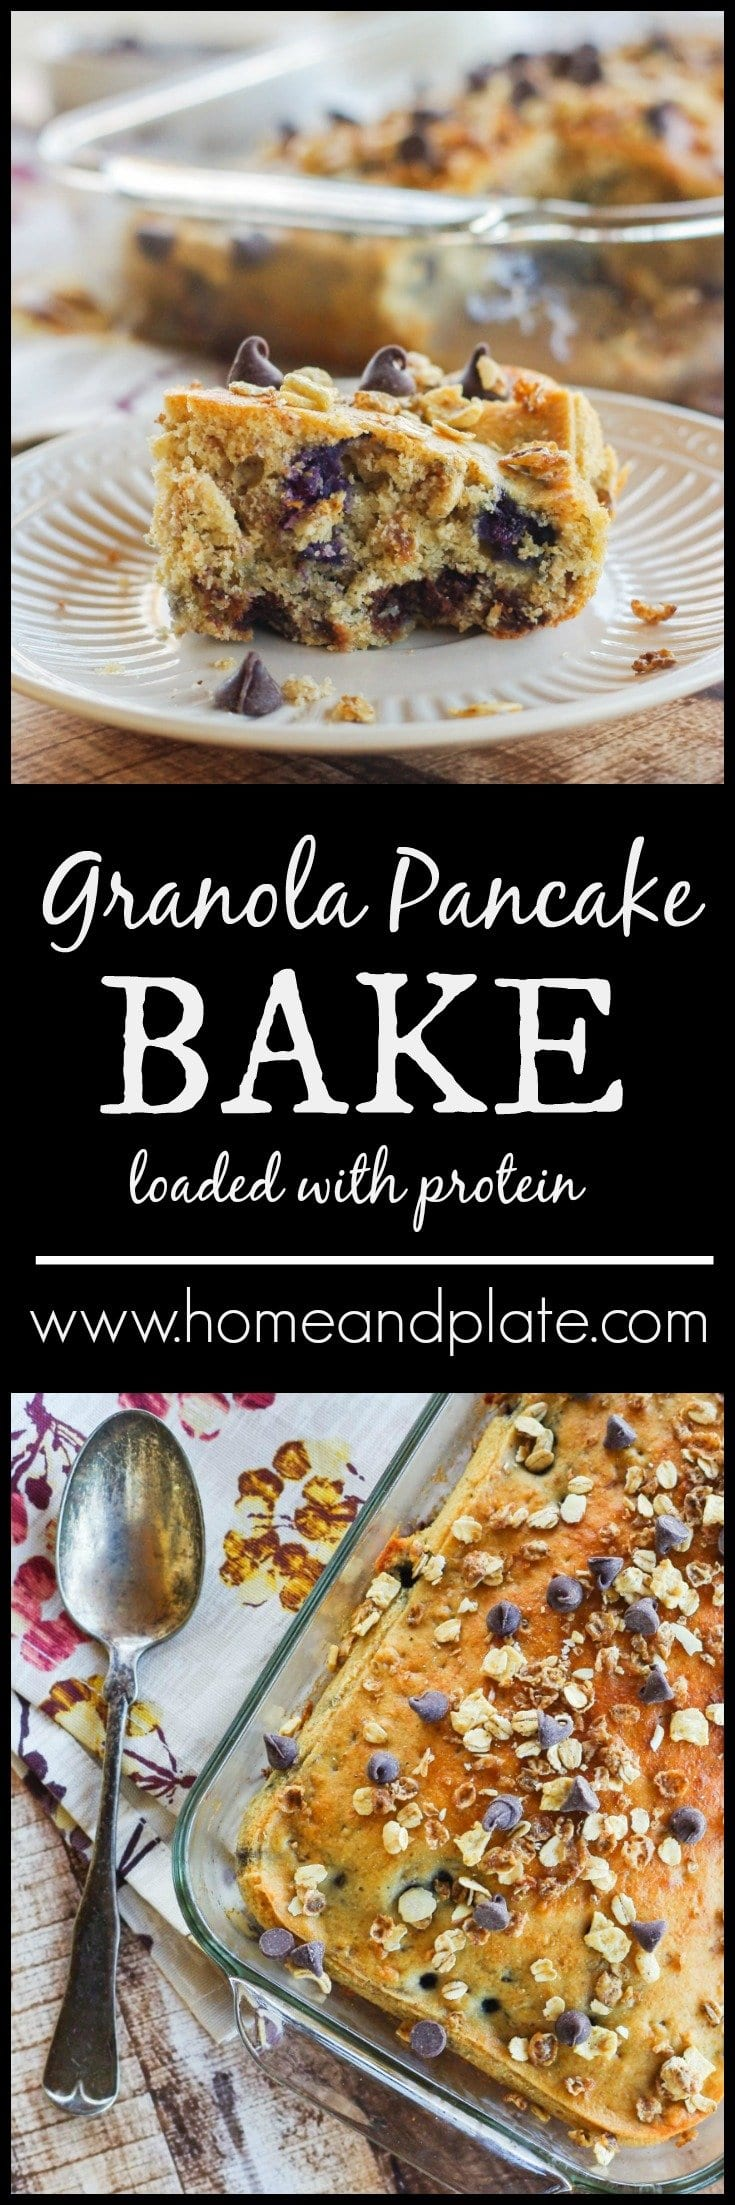 Granola Pancake Bake| www.homeandplate.com | Do you need to feed a crowd or a team of hungry athletes? Serve up my healthy protein-rich granola pancake bake for breakfast.